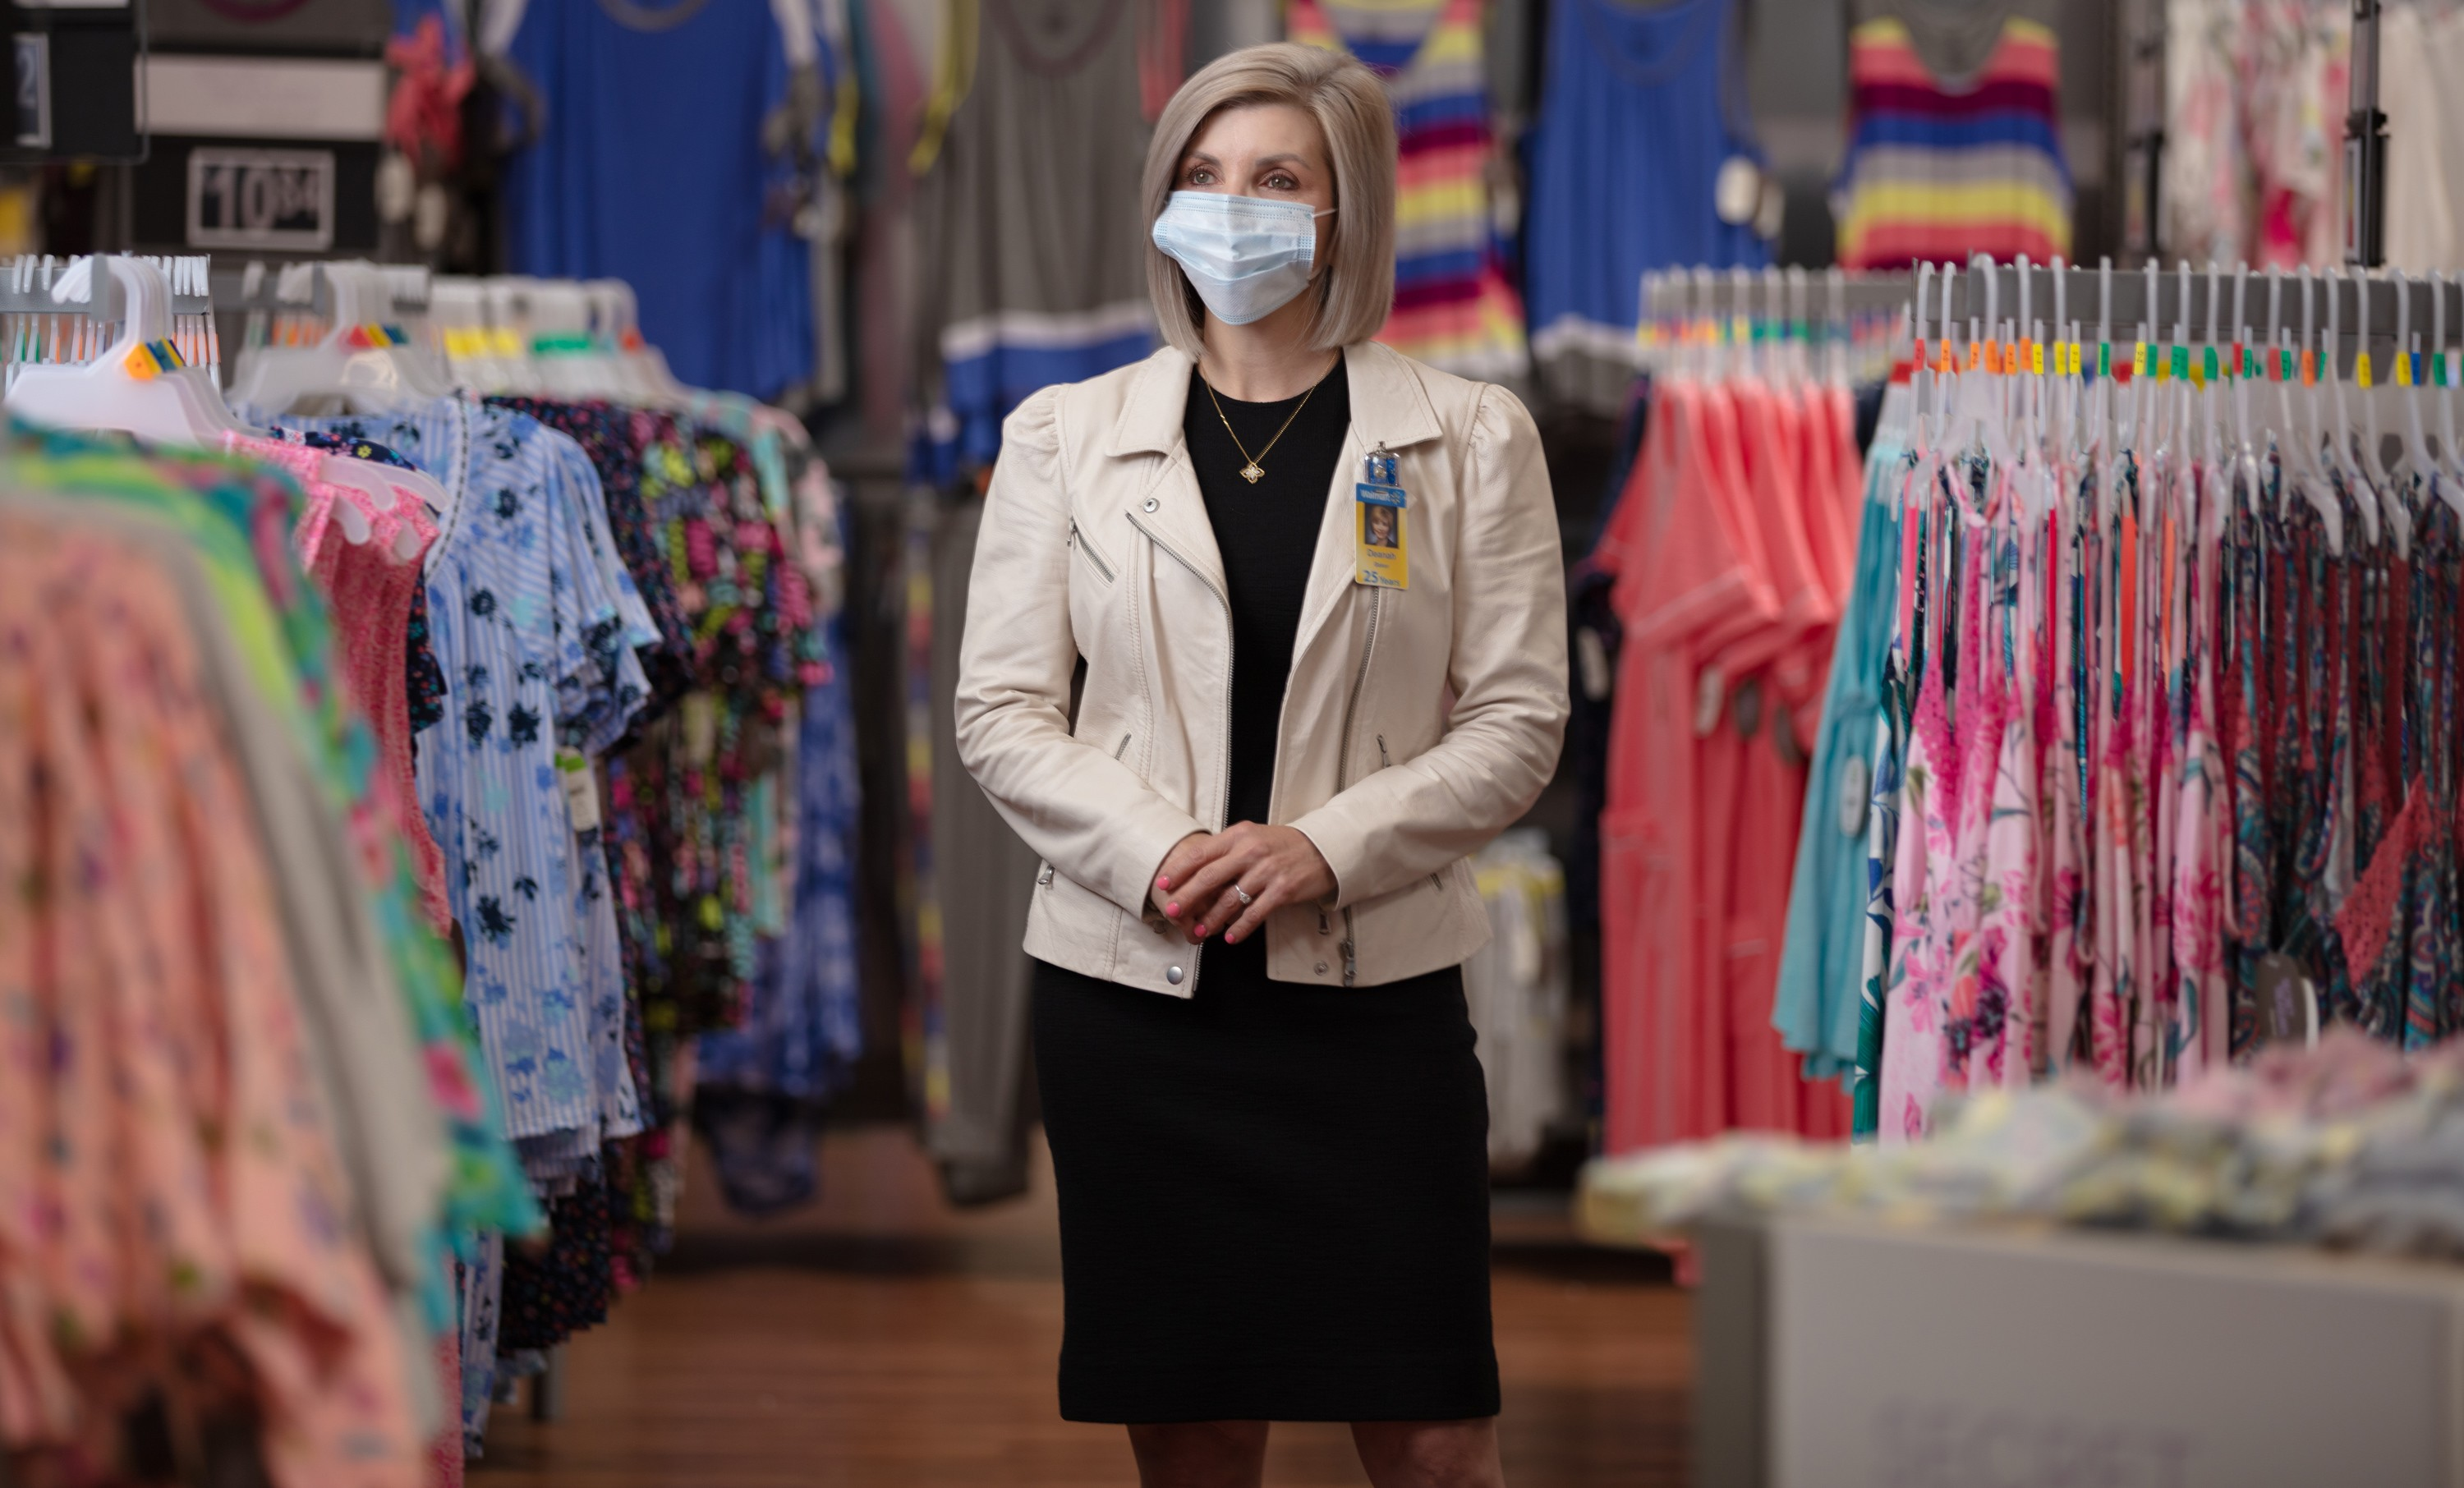 Deanah Baker, senior vice president for apparel, wears a mask in the apparel department